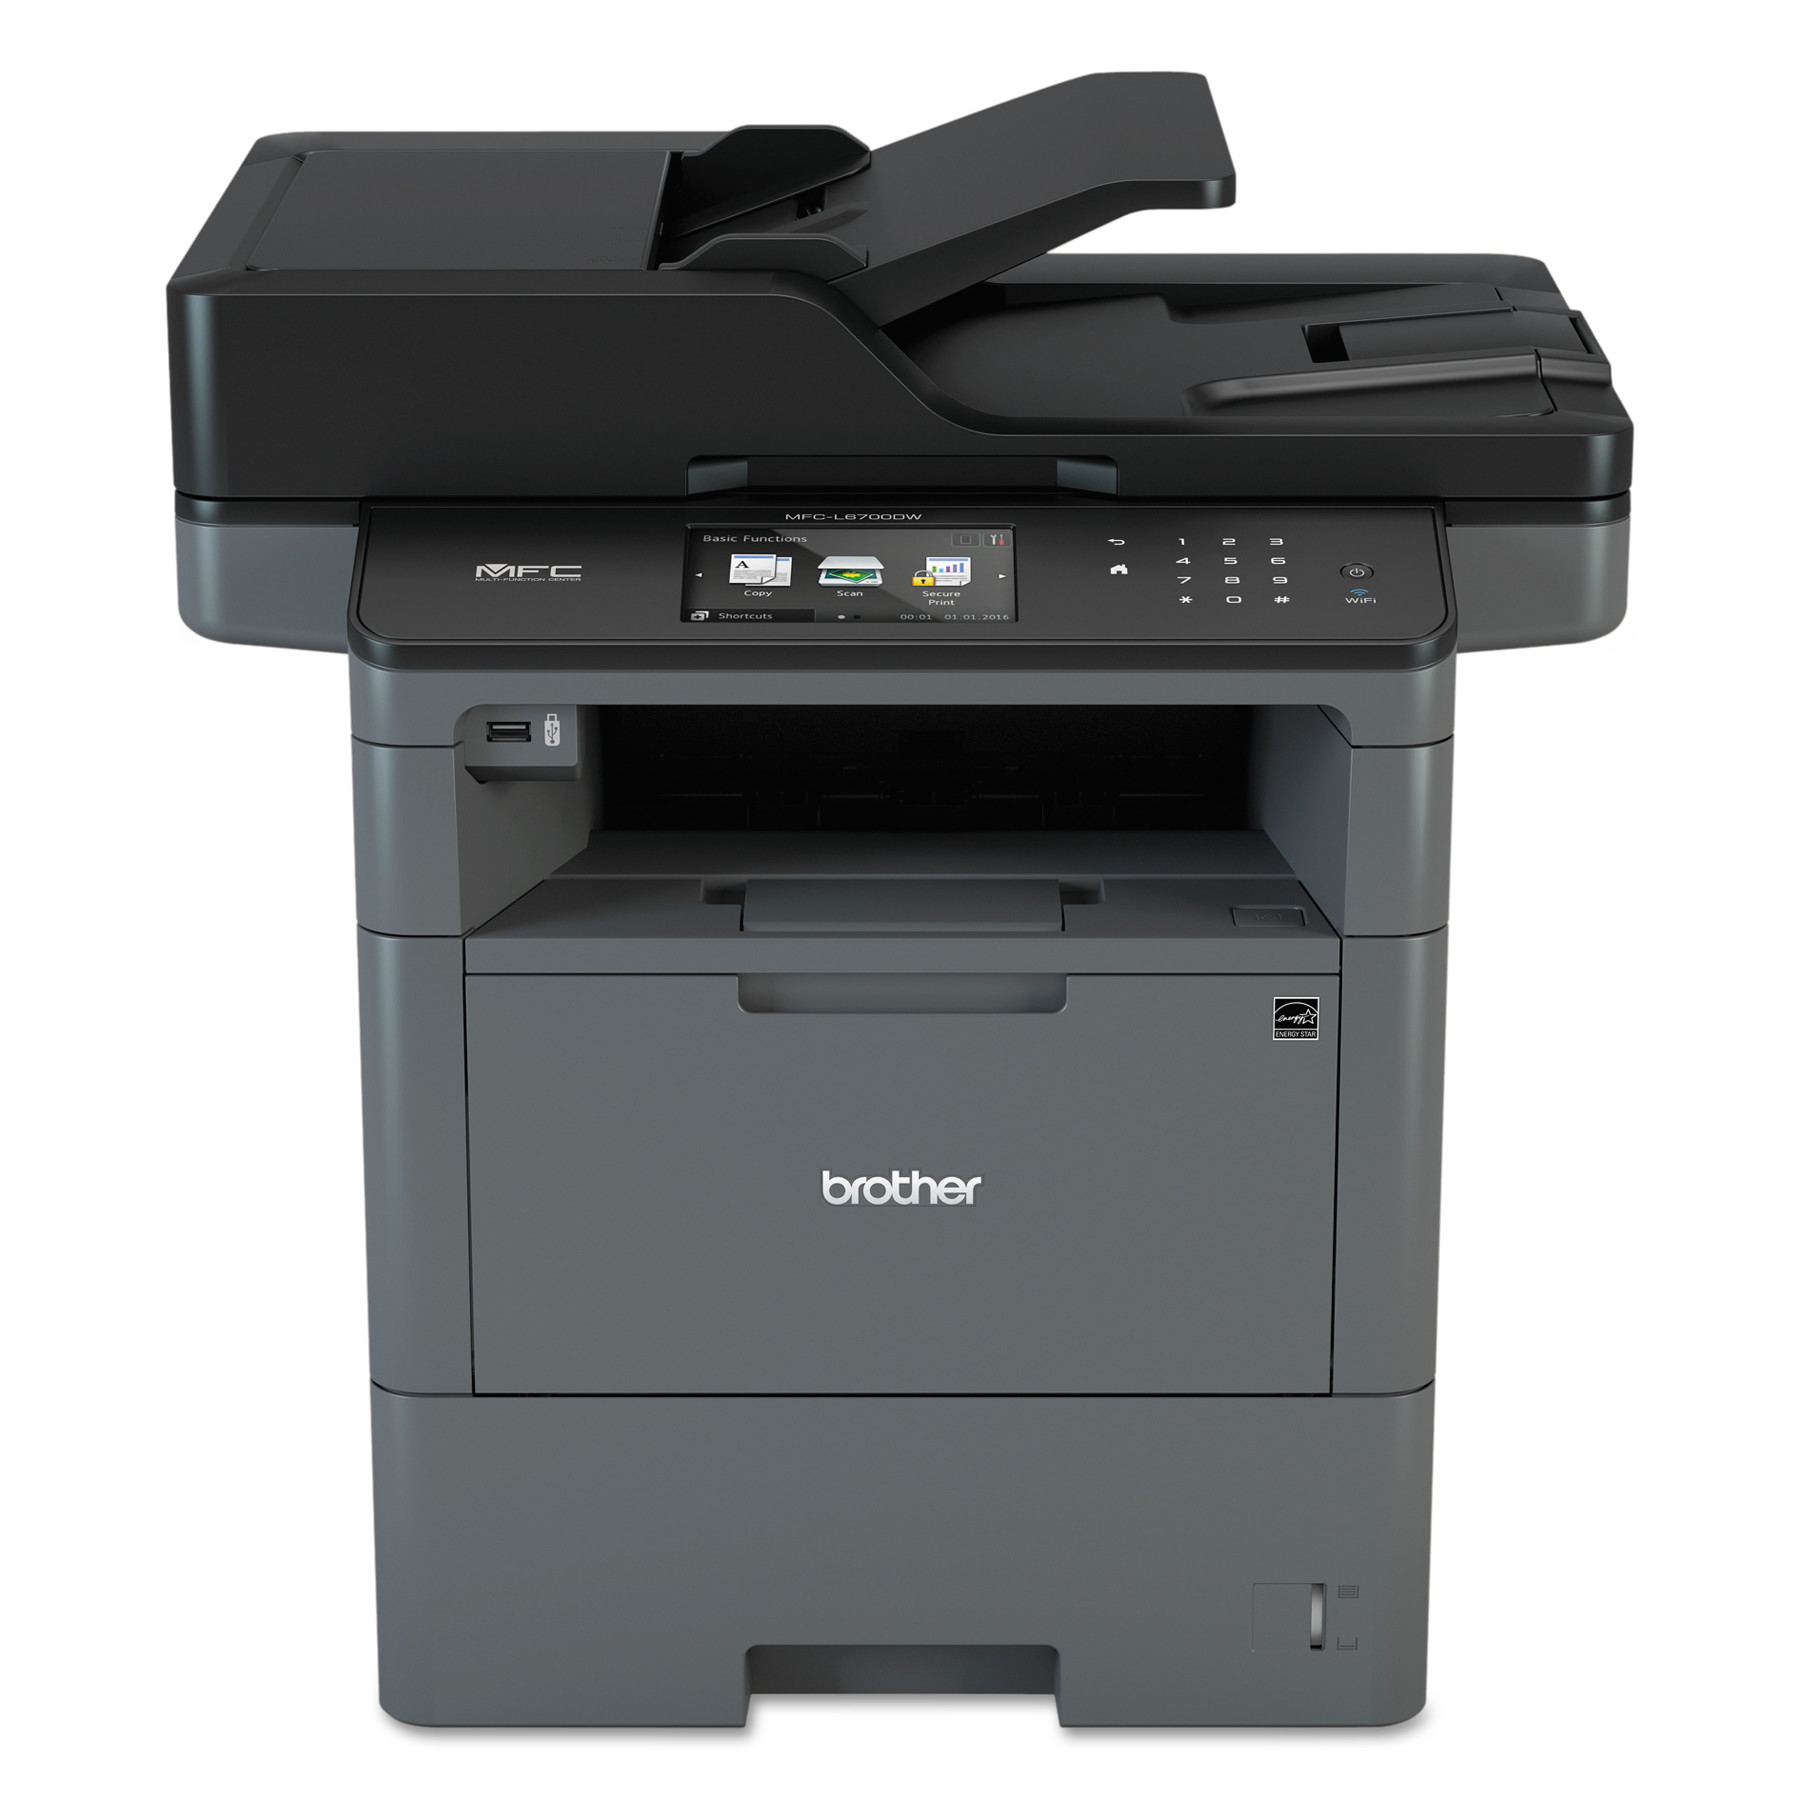 Brother MFC-L6700DW Wireless Monochrome All-in-One Laser Printer, Copy Fax Print Scan by Brother